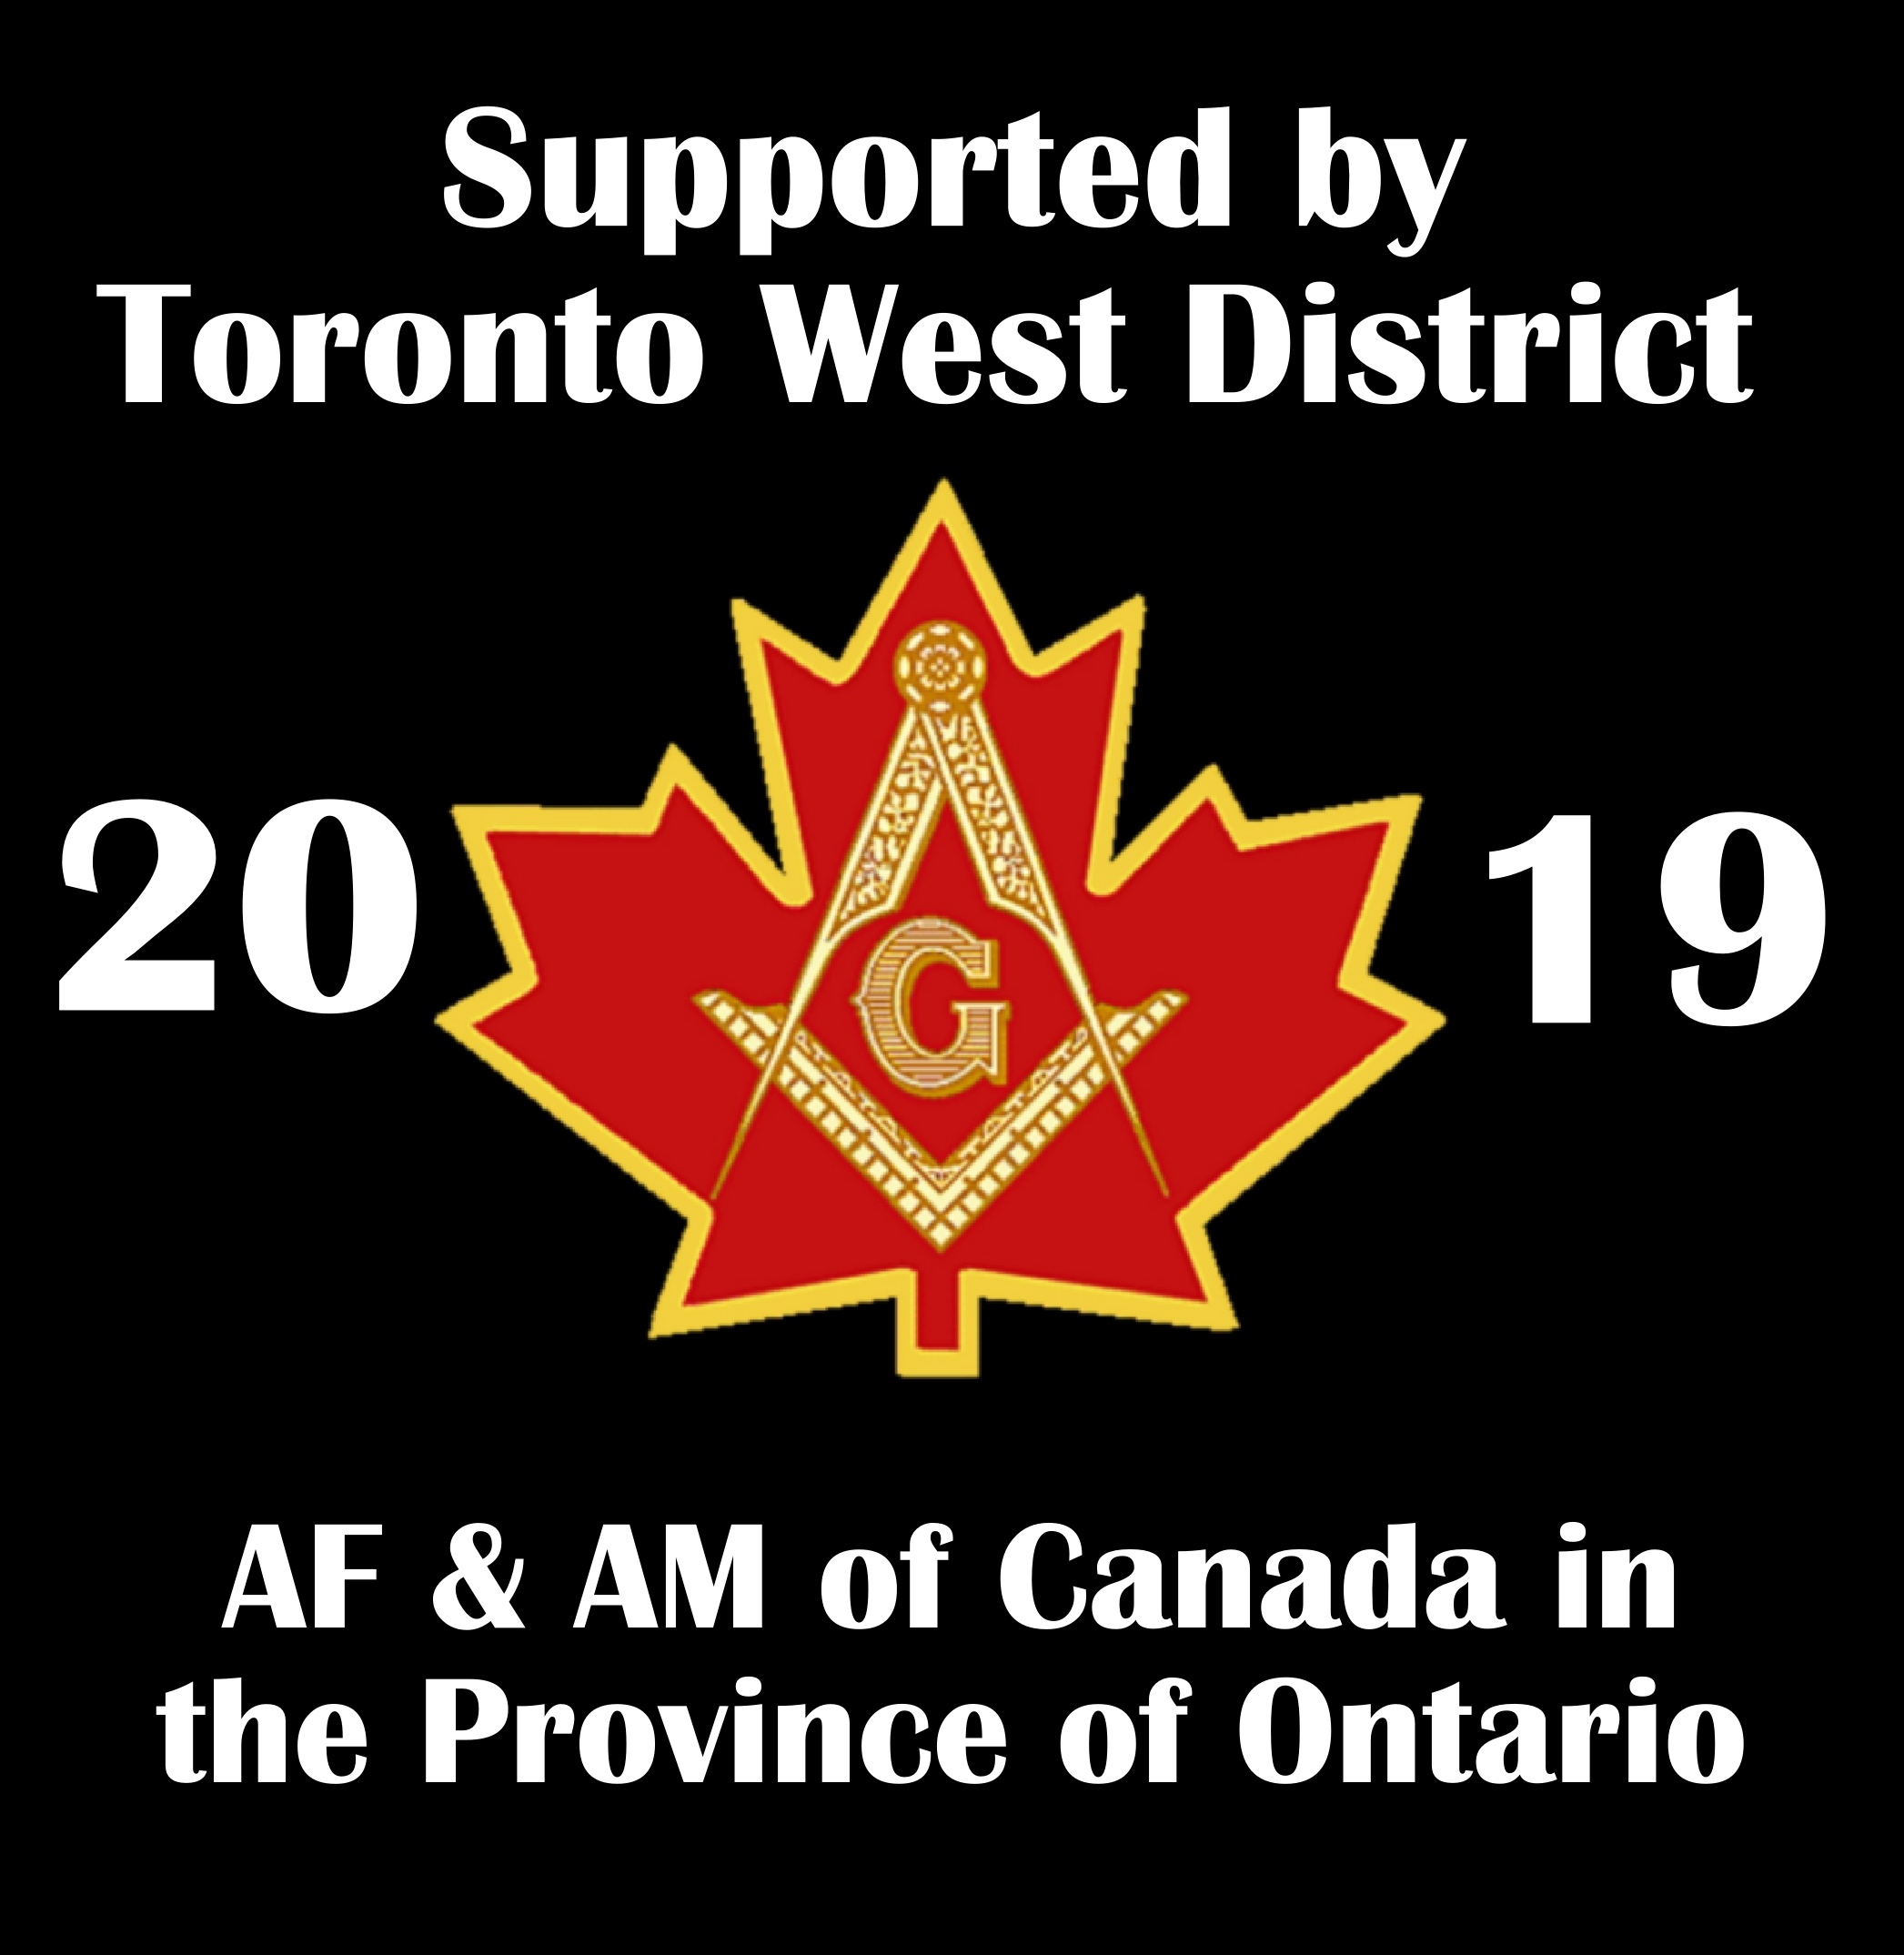 Toronto West District